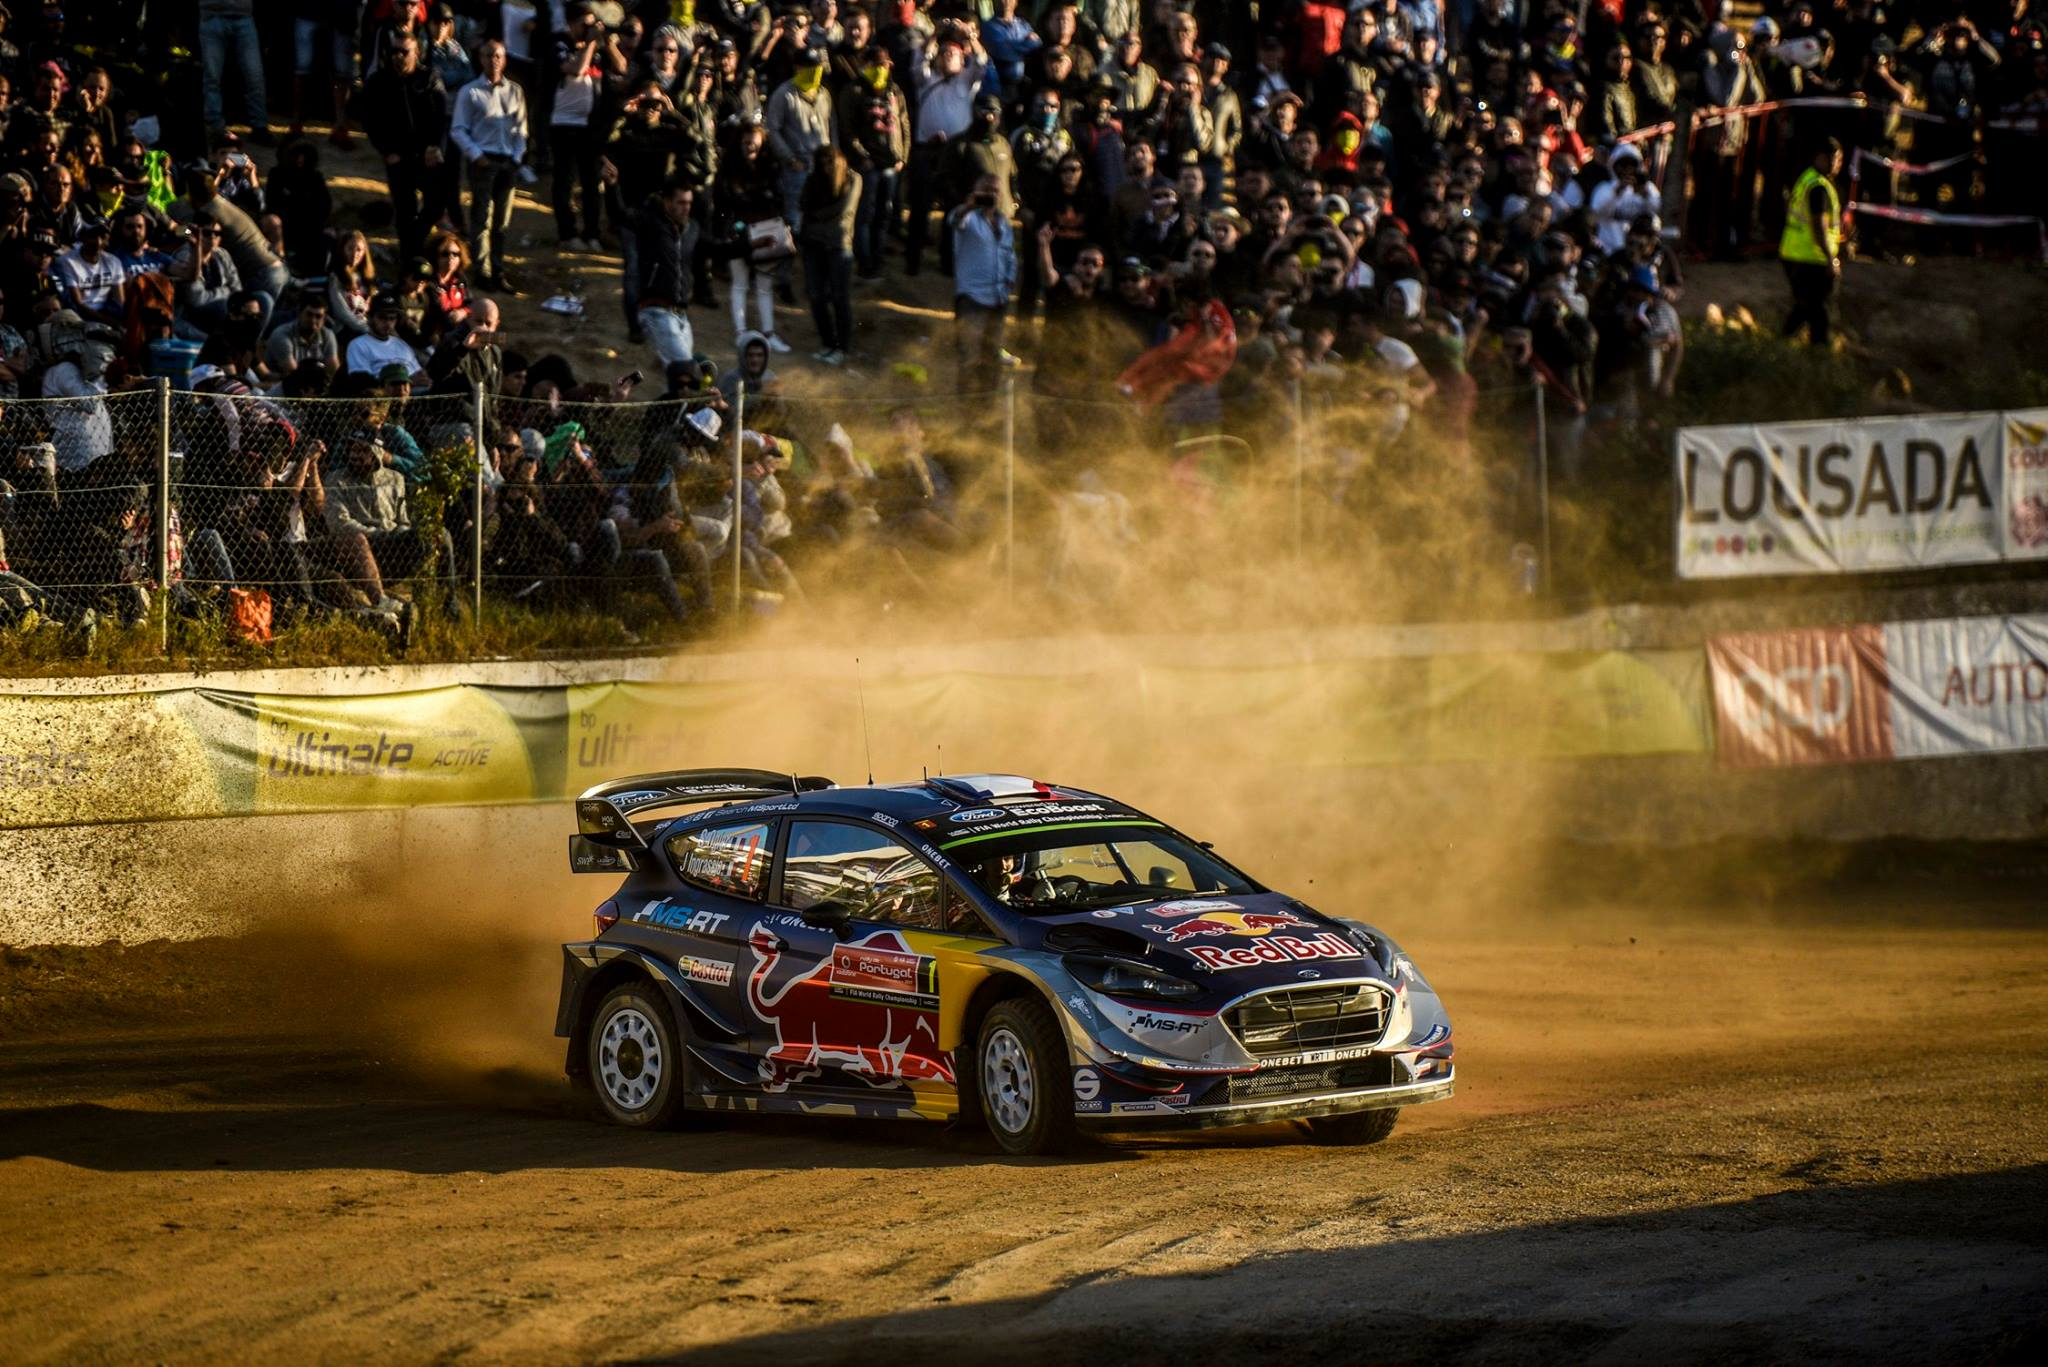 Rallying-Ogier wins in Portugal for the fifth time